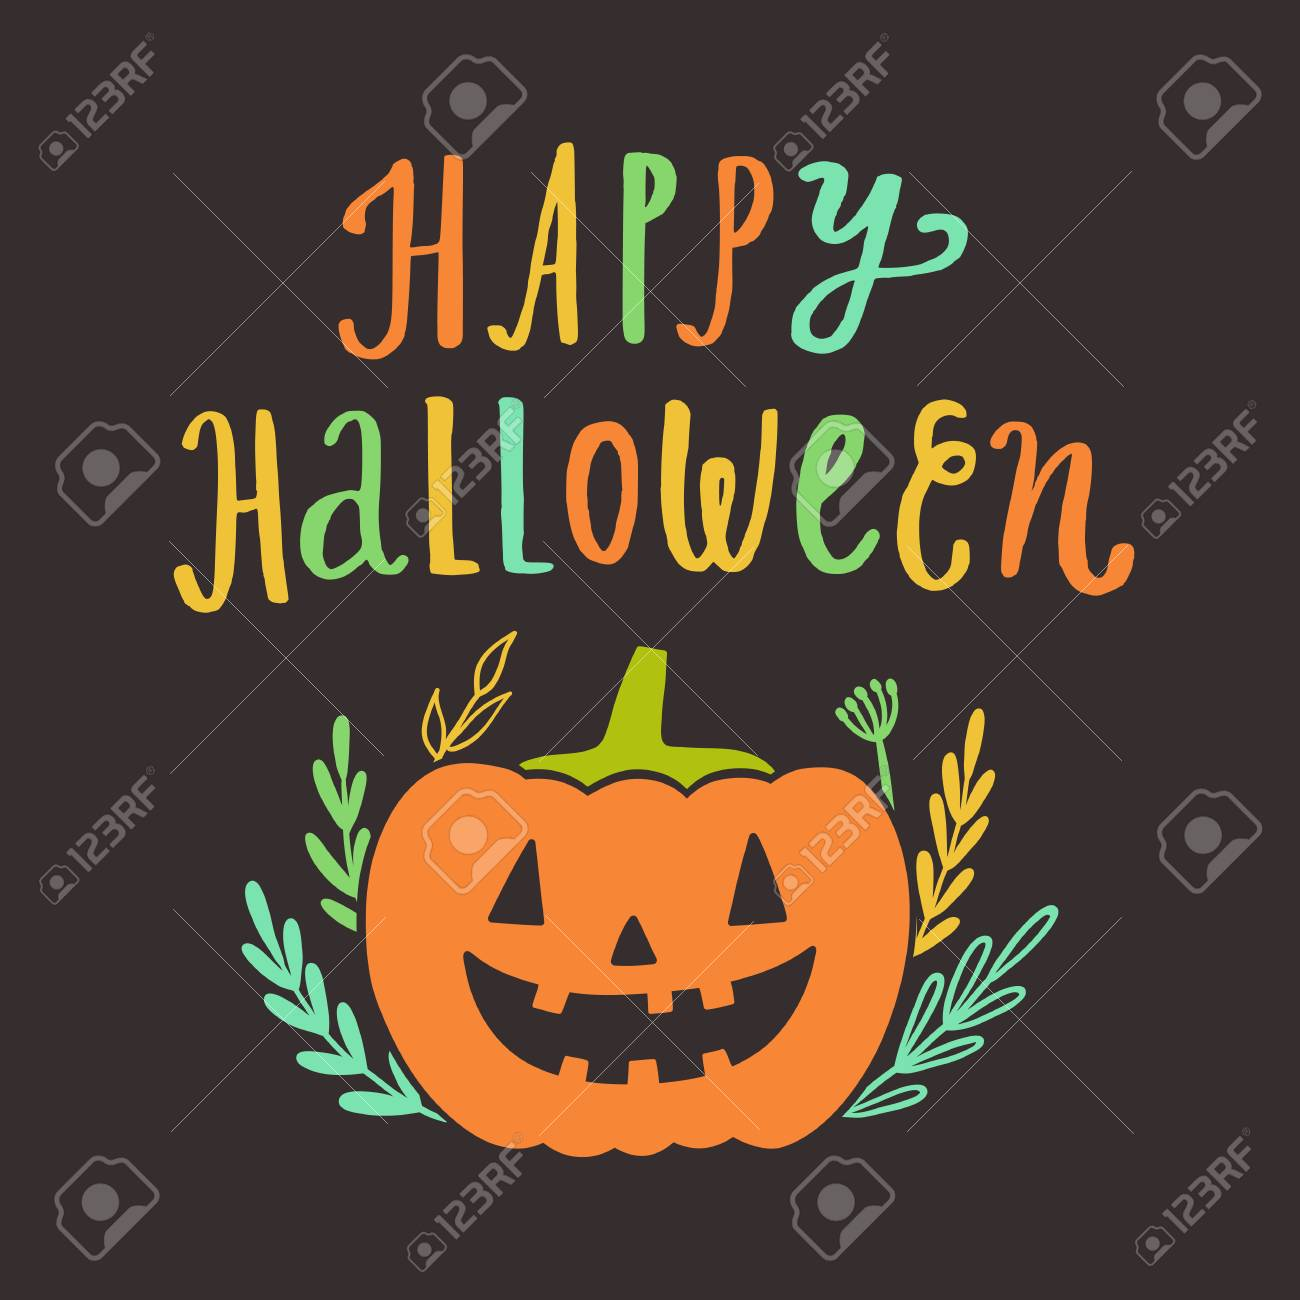 Happy Halloween Greeting Card Vector Hand Drawn Cute Illustration Stock Photo Picture And Royalty Free Image Image 87109165